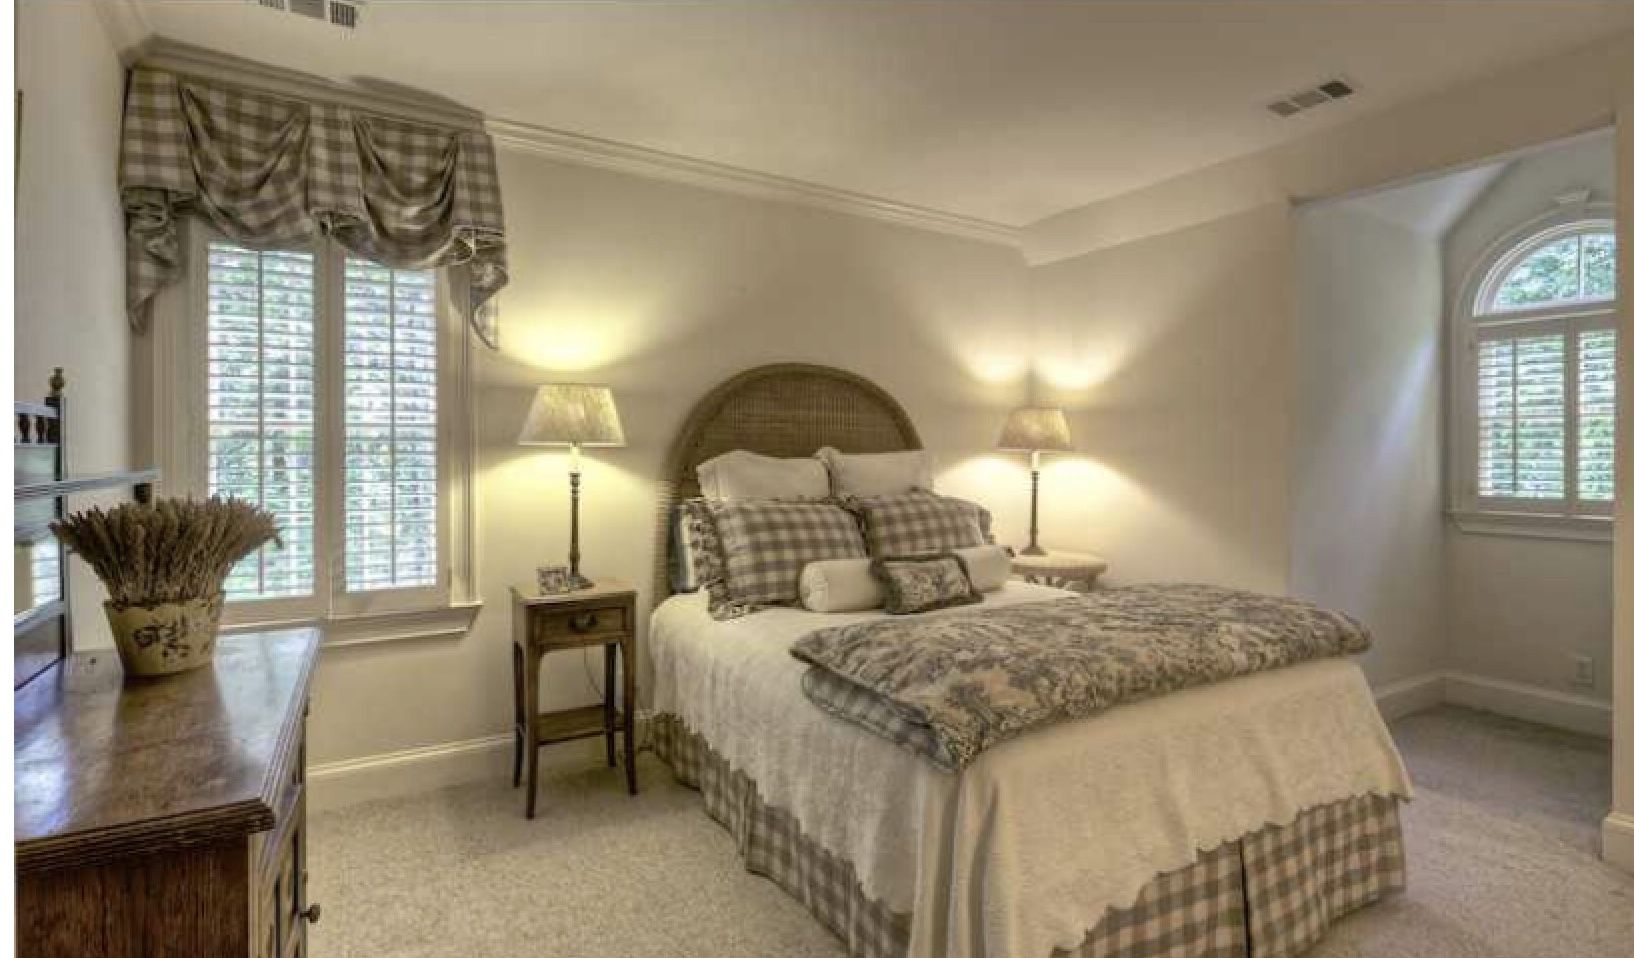 Pin by tish inman on bedroom Custom bed, Home, Bed